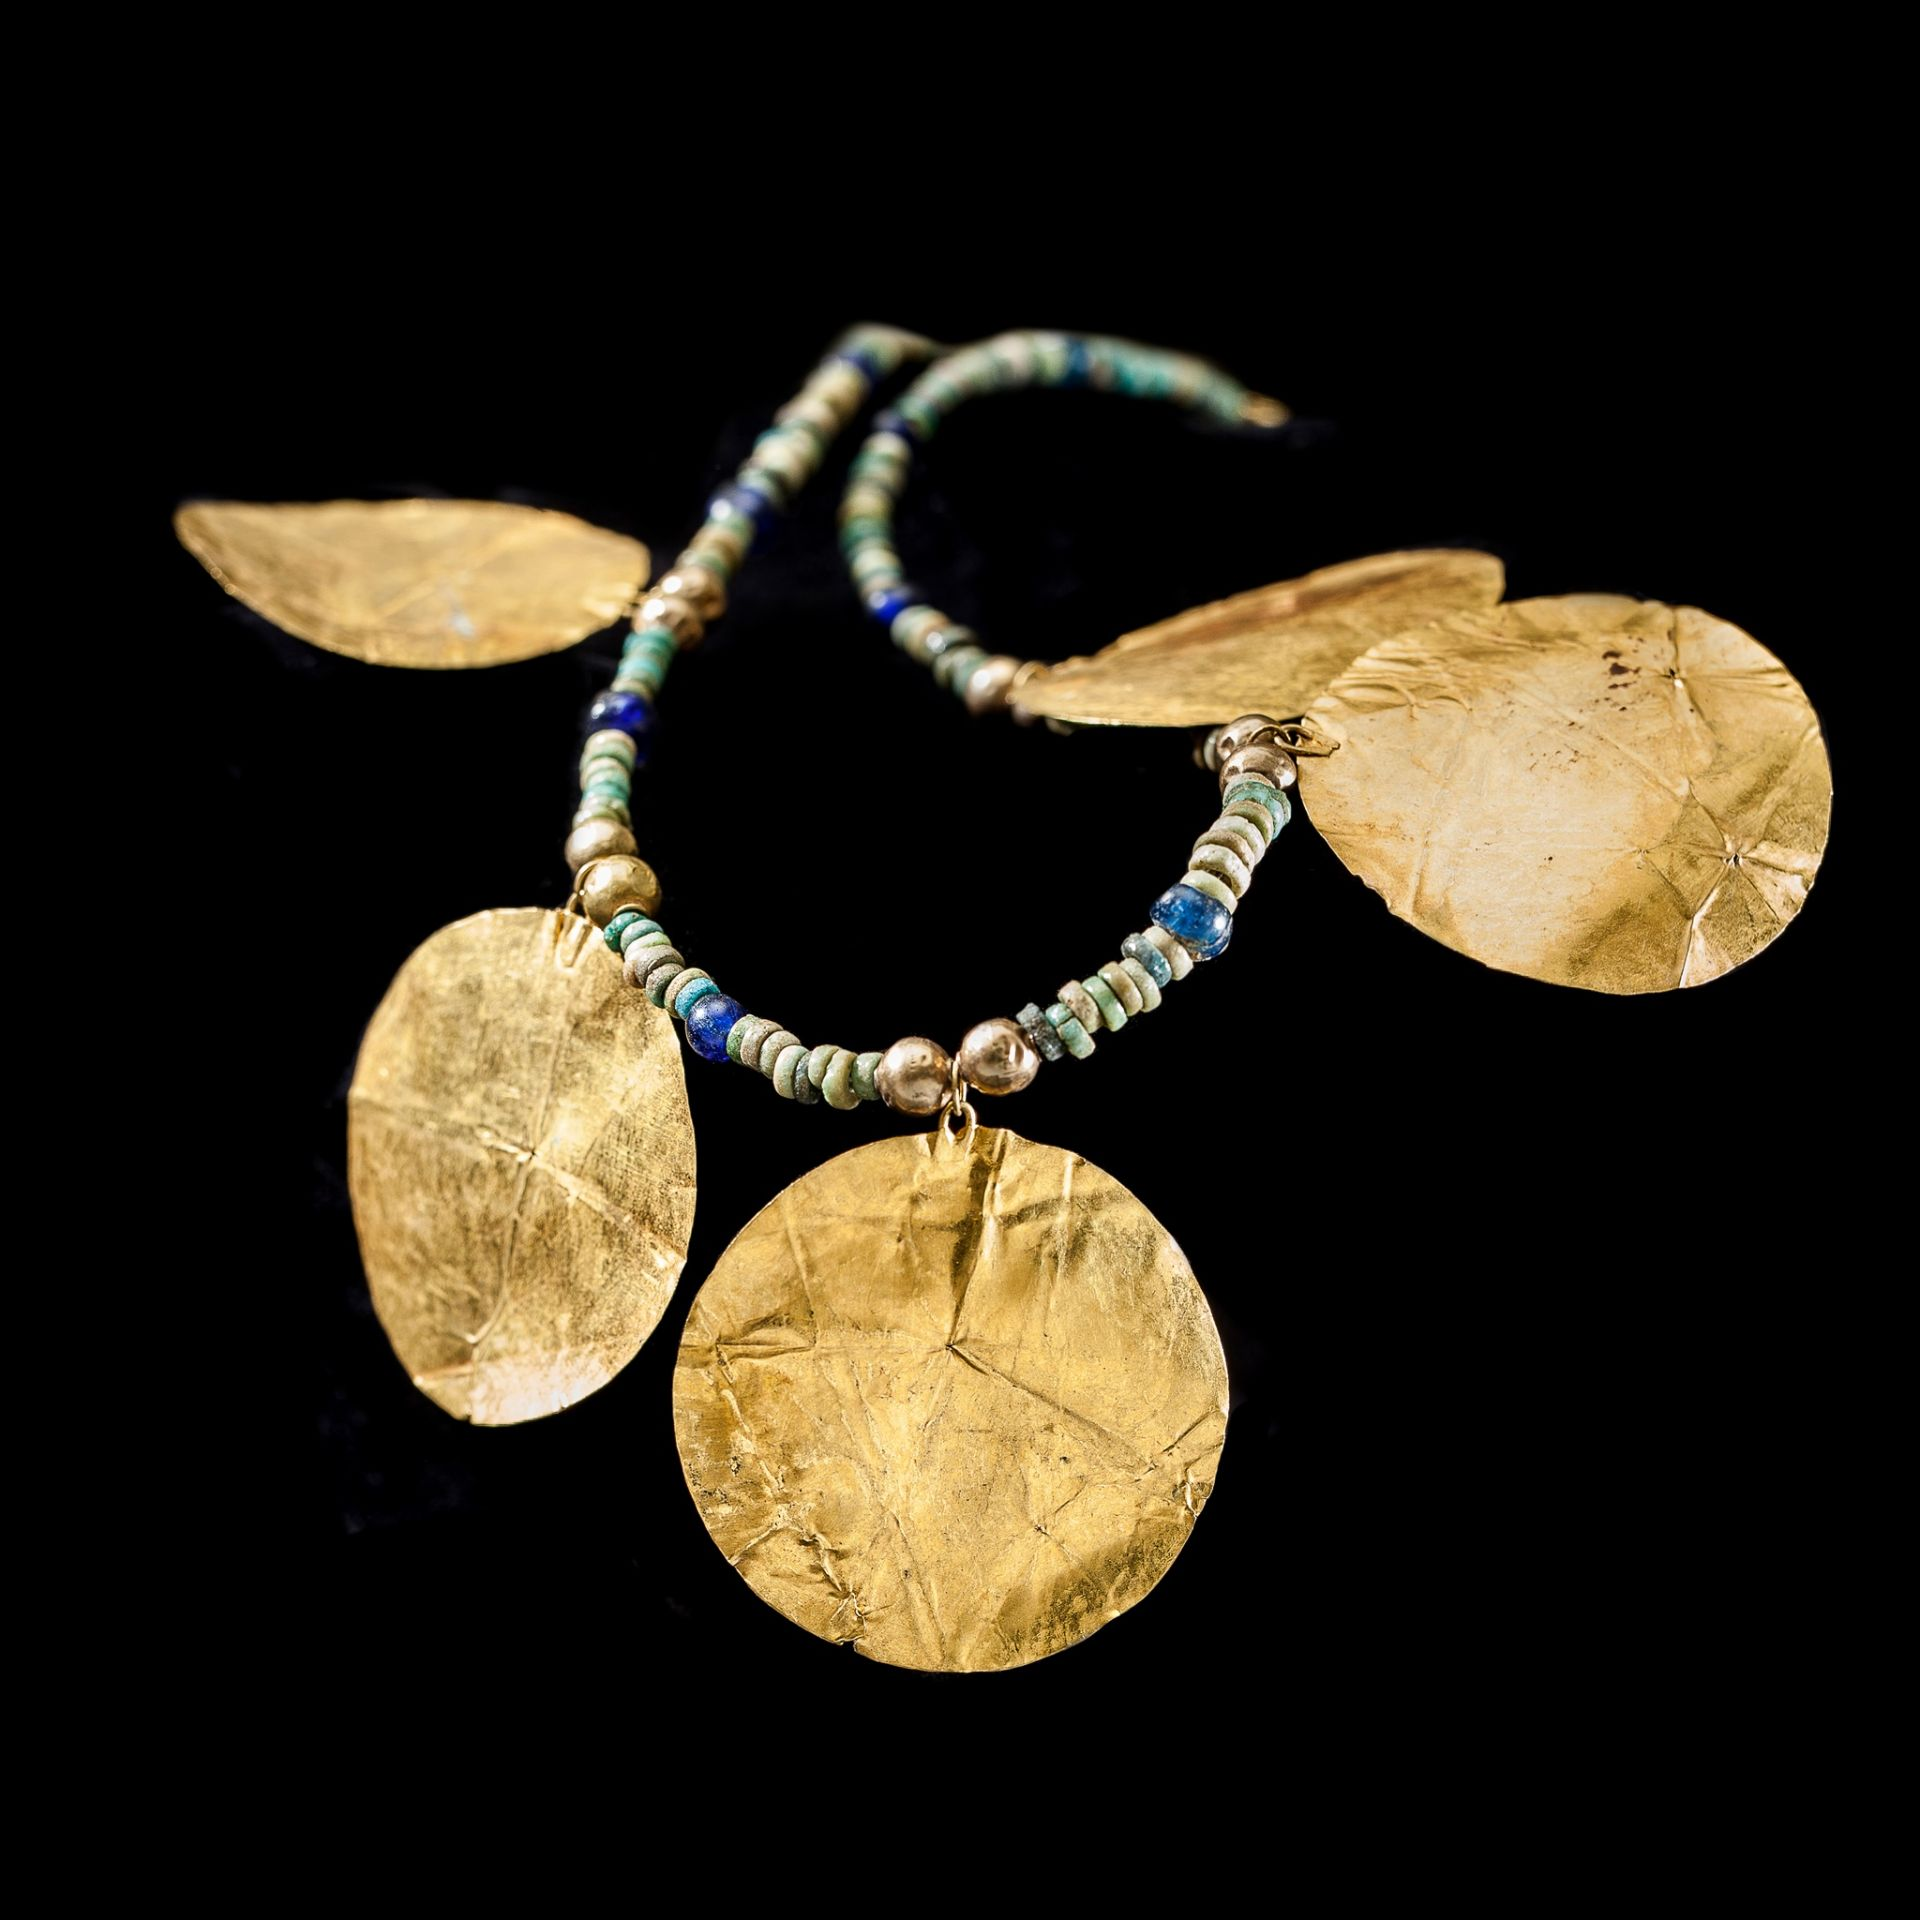 WESTERN ASIATIC NECKLACE NEAR EAST, 1ST MILLENNIUM B.C. - Image 2 of 2